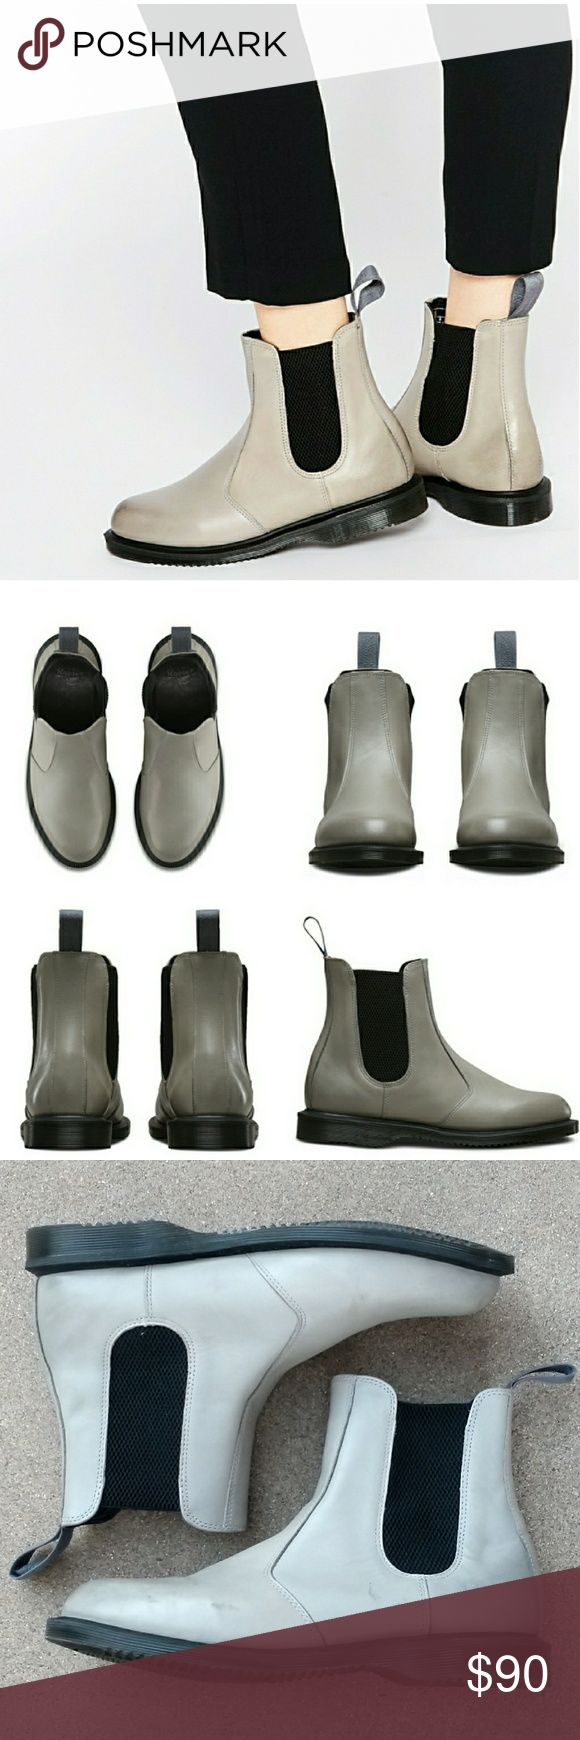 """DR./DOC MARTEN Flora Leather Chelsea Ankle Boot An essential Chelsea boot cast in smooth leather punctuates your street style with a hint of old-school flair.  Appx 1"""" heel; 1/2"""" platform, 6"""" boot shaft.  Leather upper/leather and textile lining/synthetic sole.  Worn a handful of times.  Some discoloration, see pics.  Size 10 US women's. Gray color. Dr. Martens Shoes Ankle Boots & Booties"""